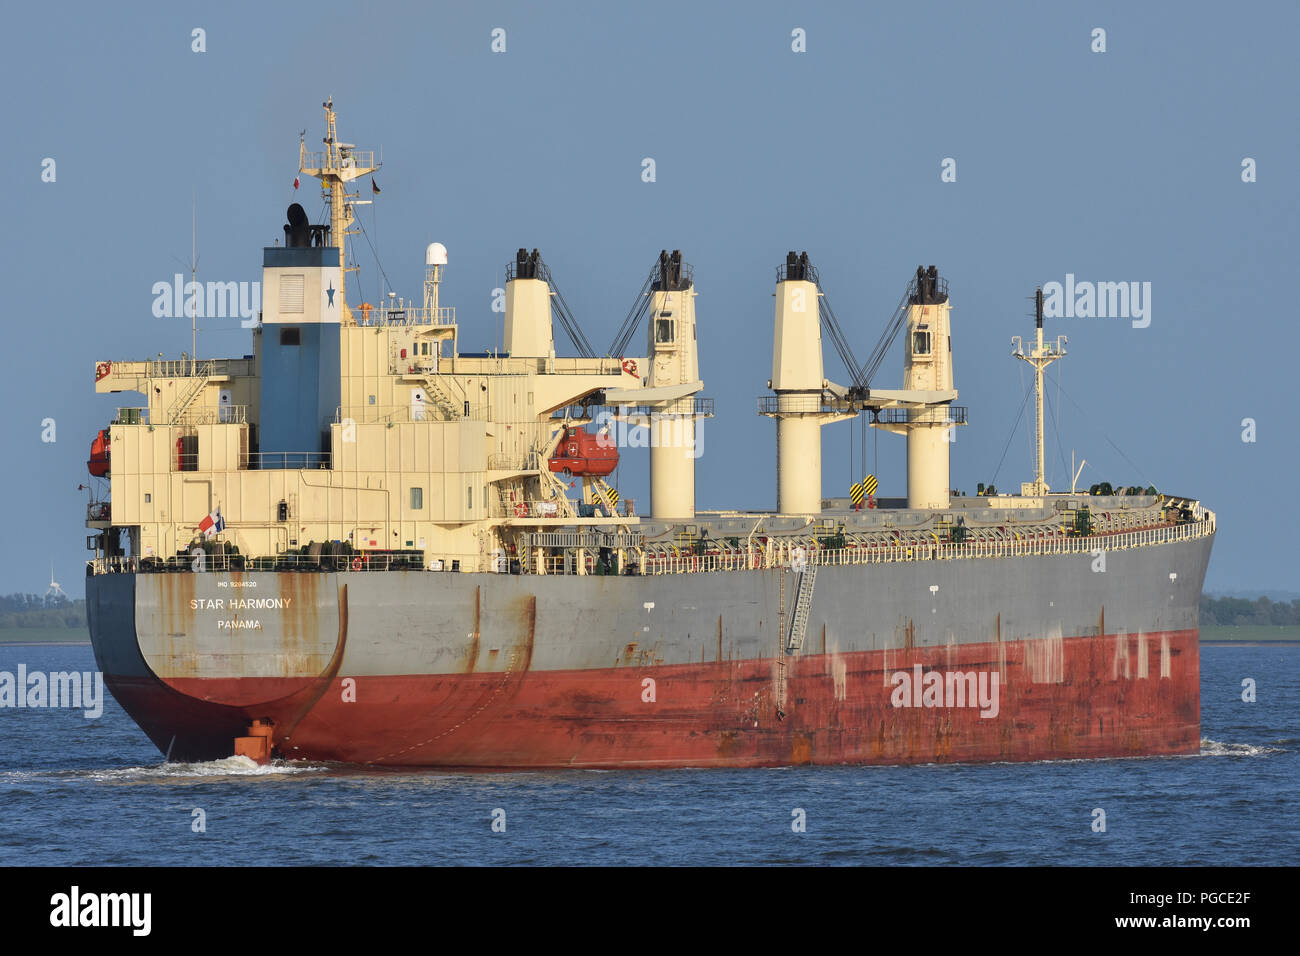 Bulk-Carrier Star HarmonyStock Photo